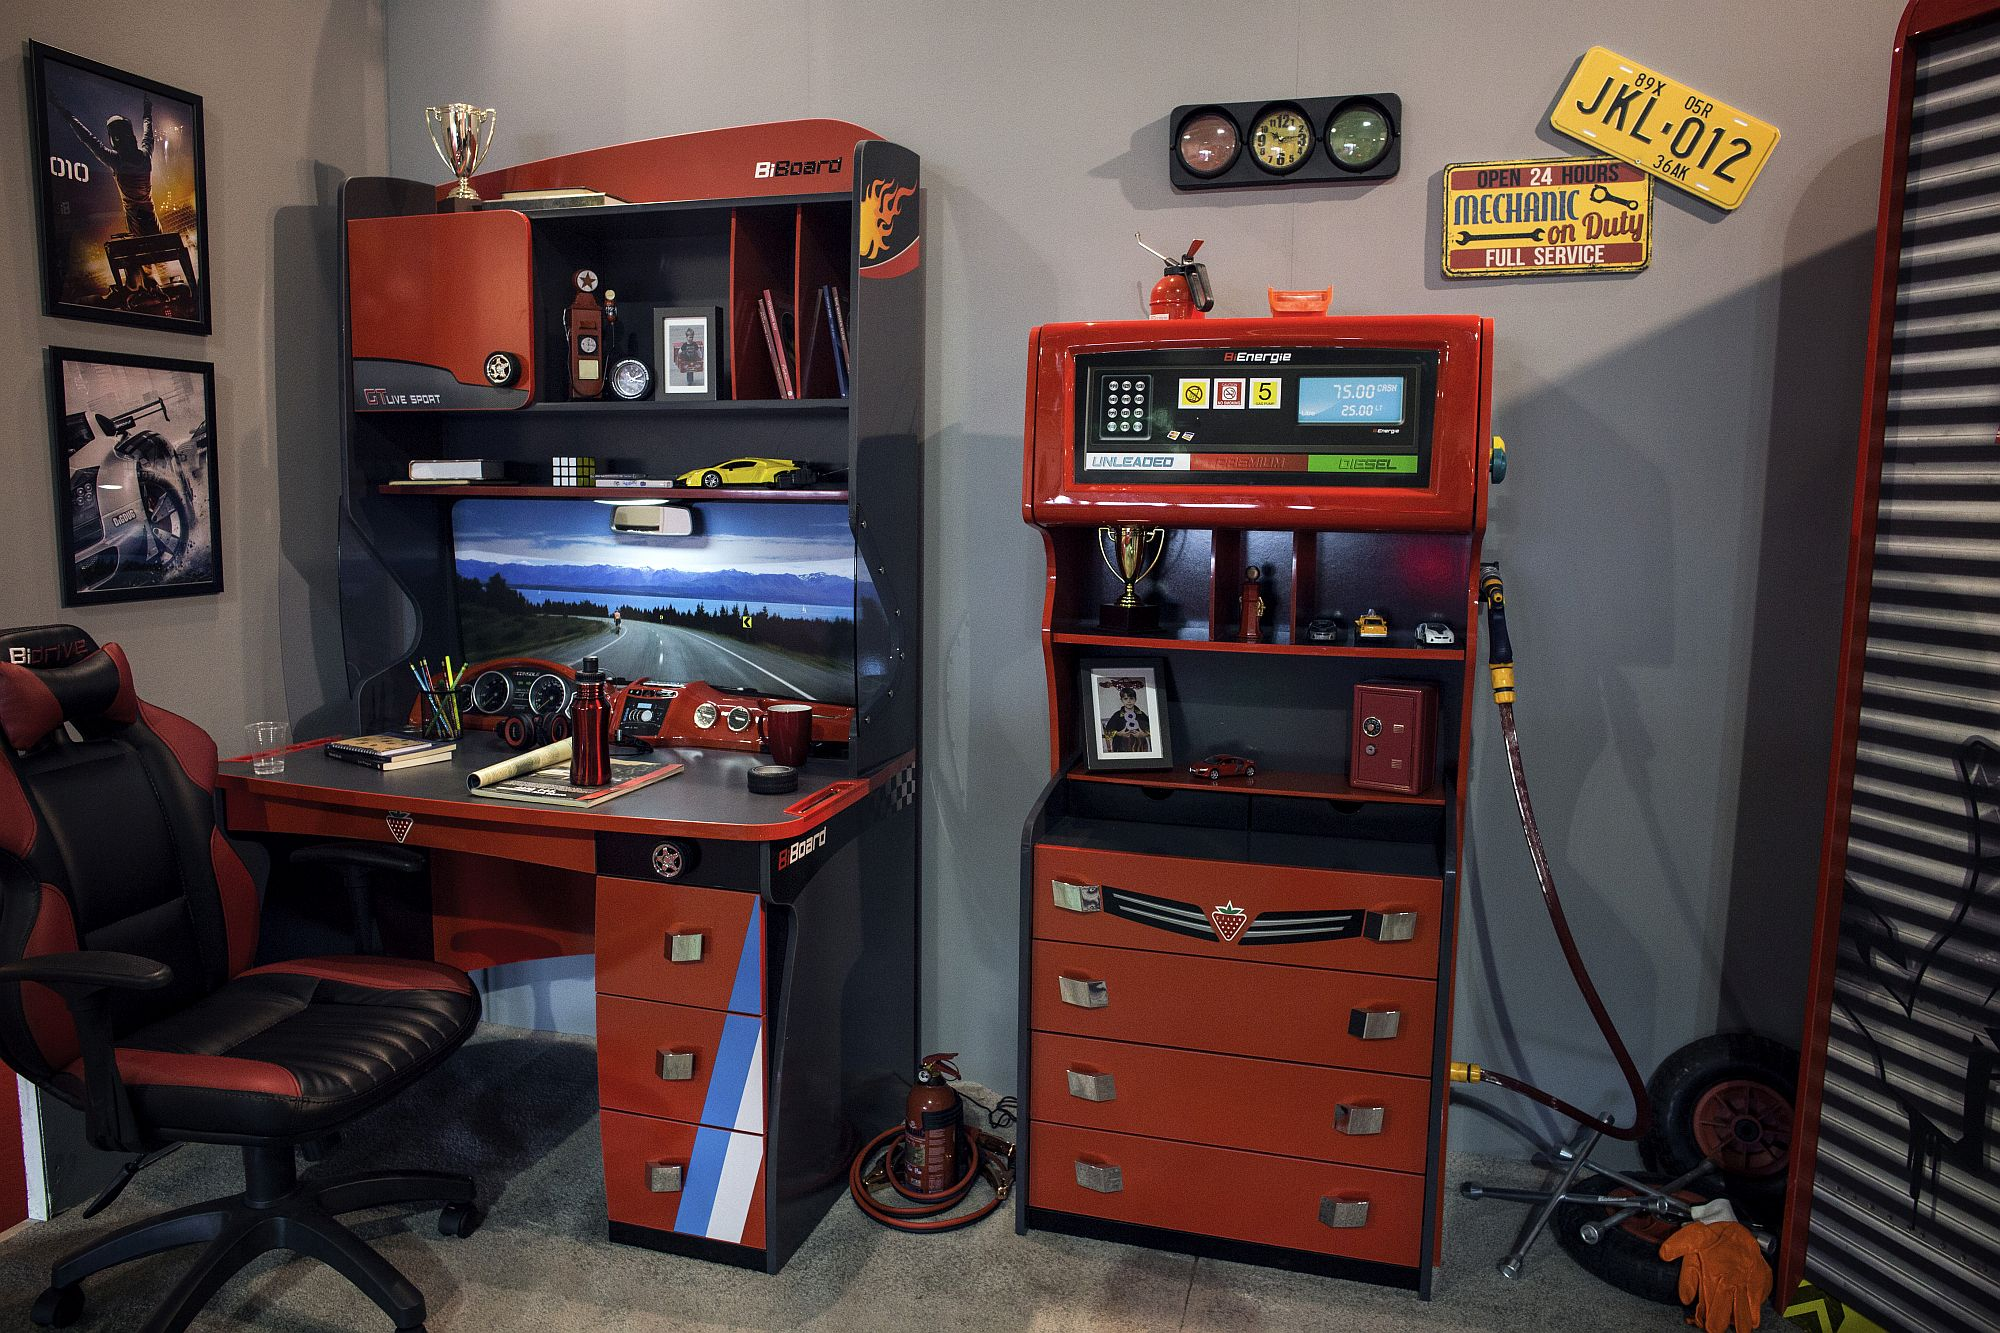 Retro style homework zone borrows from the form of arcade games